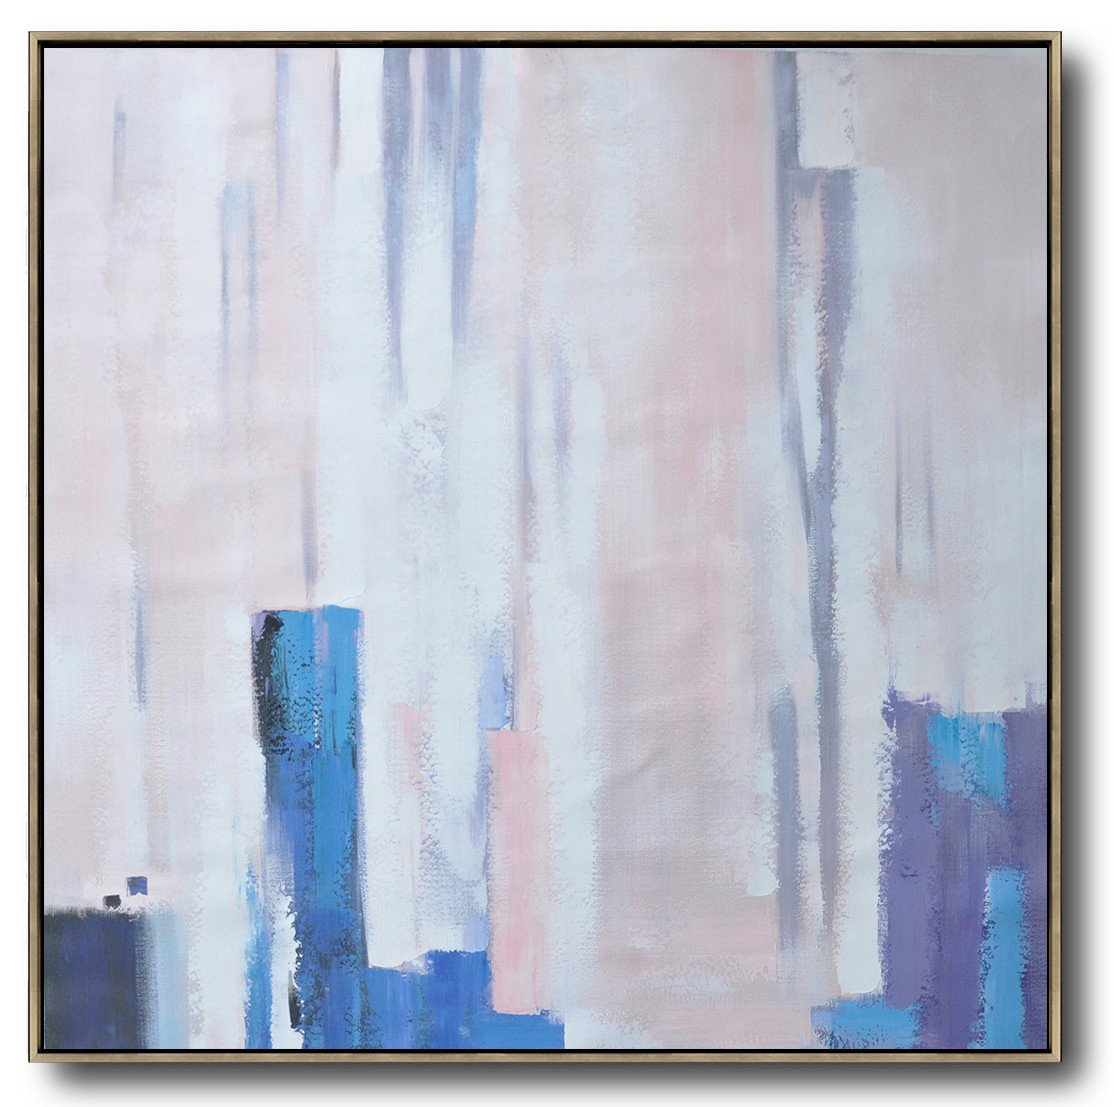 "Extra Large 72"" Acrylic Painting,Oversized Contemporary Art,Extra Large Canvas Art,Handmade Acrylic Painting,White,Pink,Violet Ash.etc"